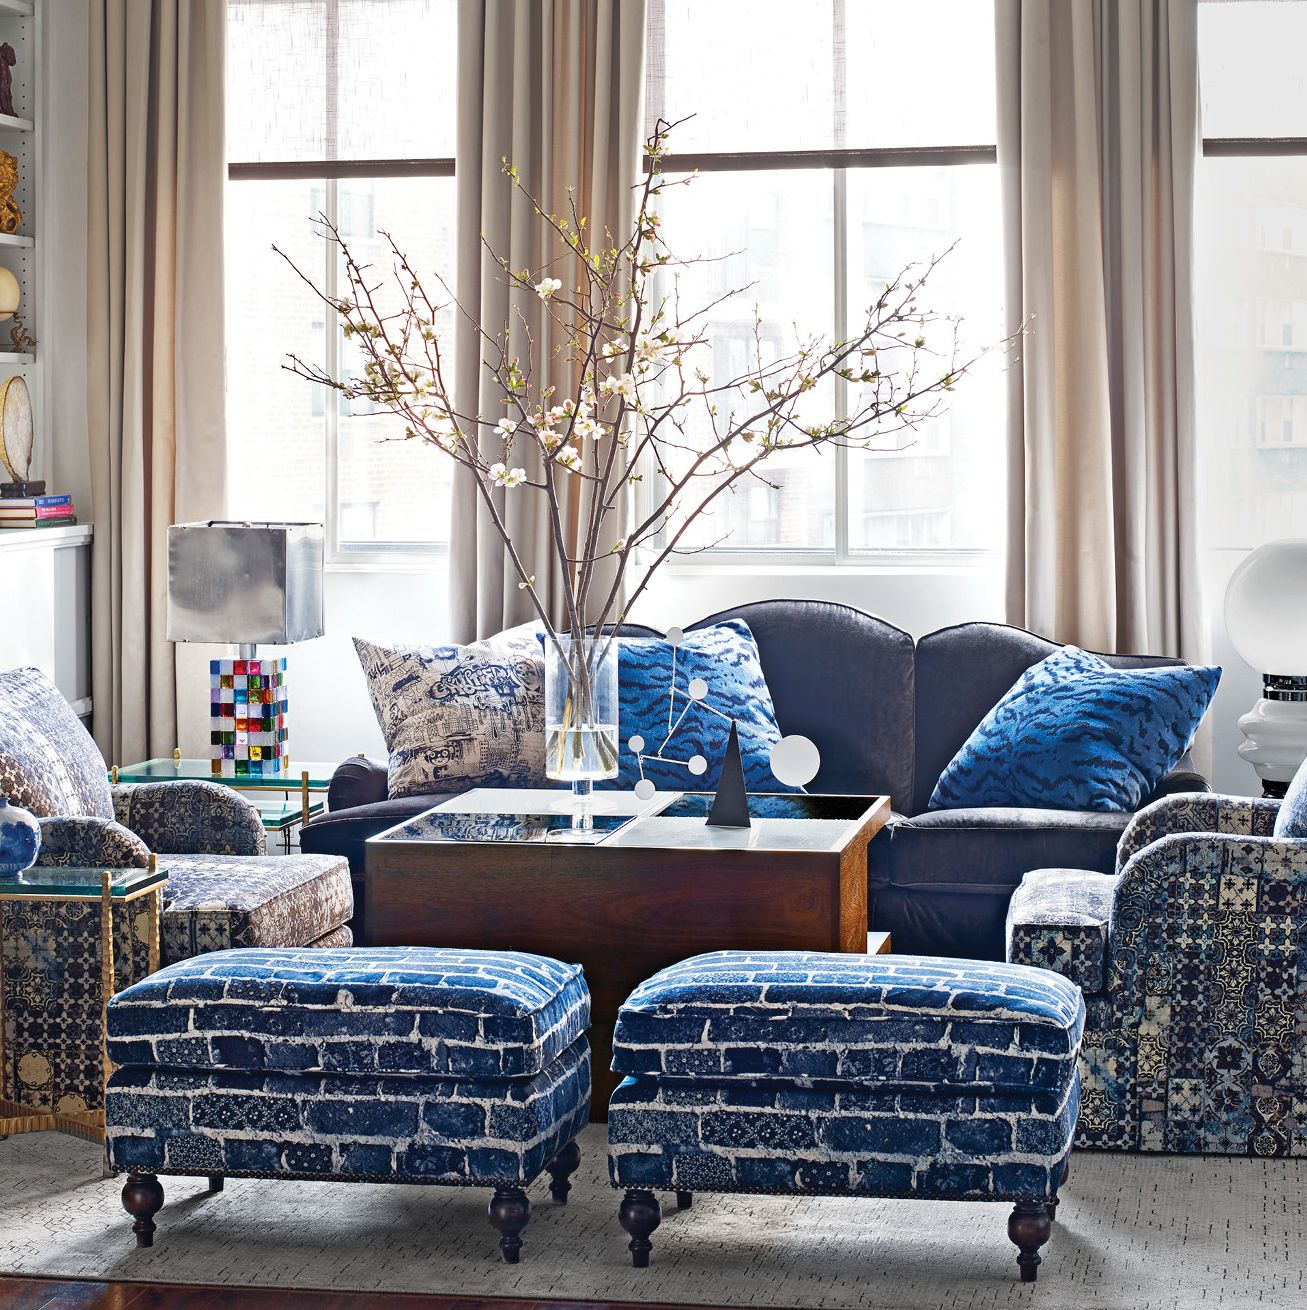 Urban Cowboy Meets Old World New York in a Textile Heir's Apartment